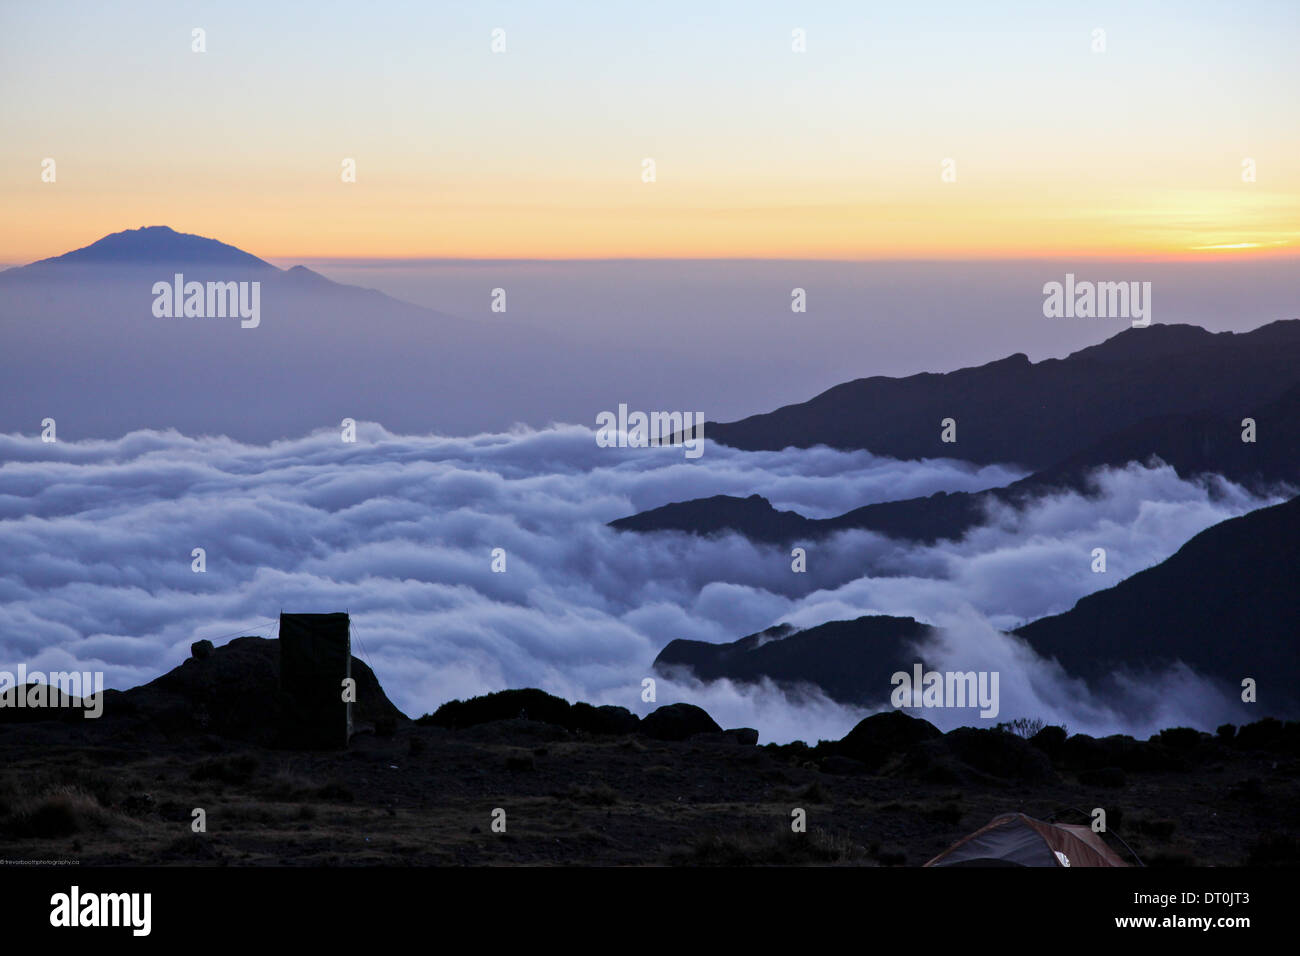 Mount Meru of Arusha National Park in the distance, taken at sunset from Shira camp on Mount Kilimanjaro - Stock Image